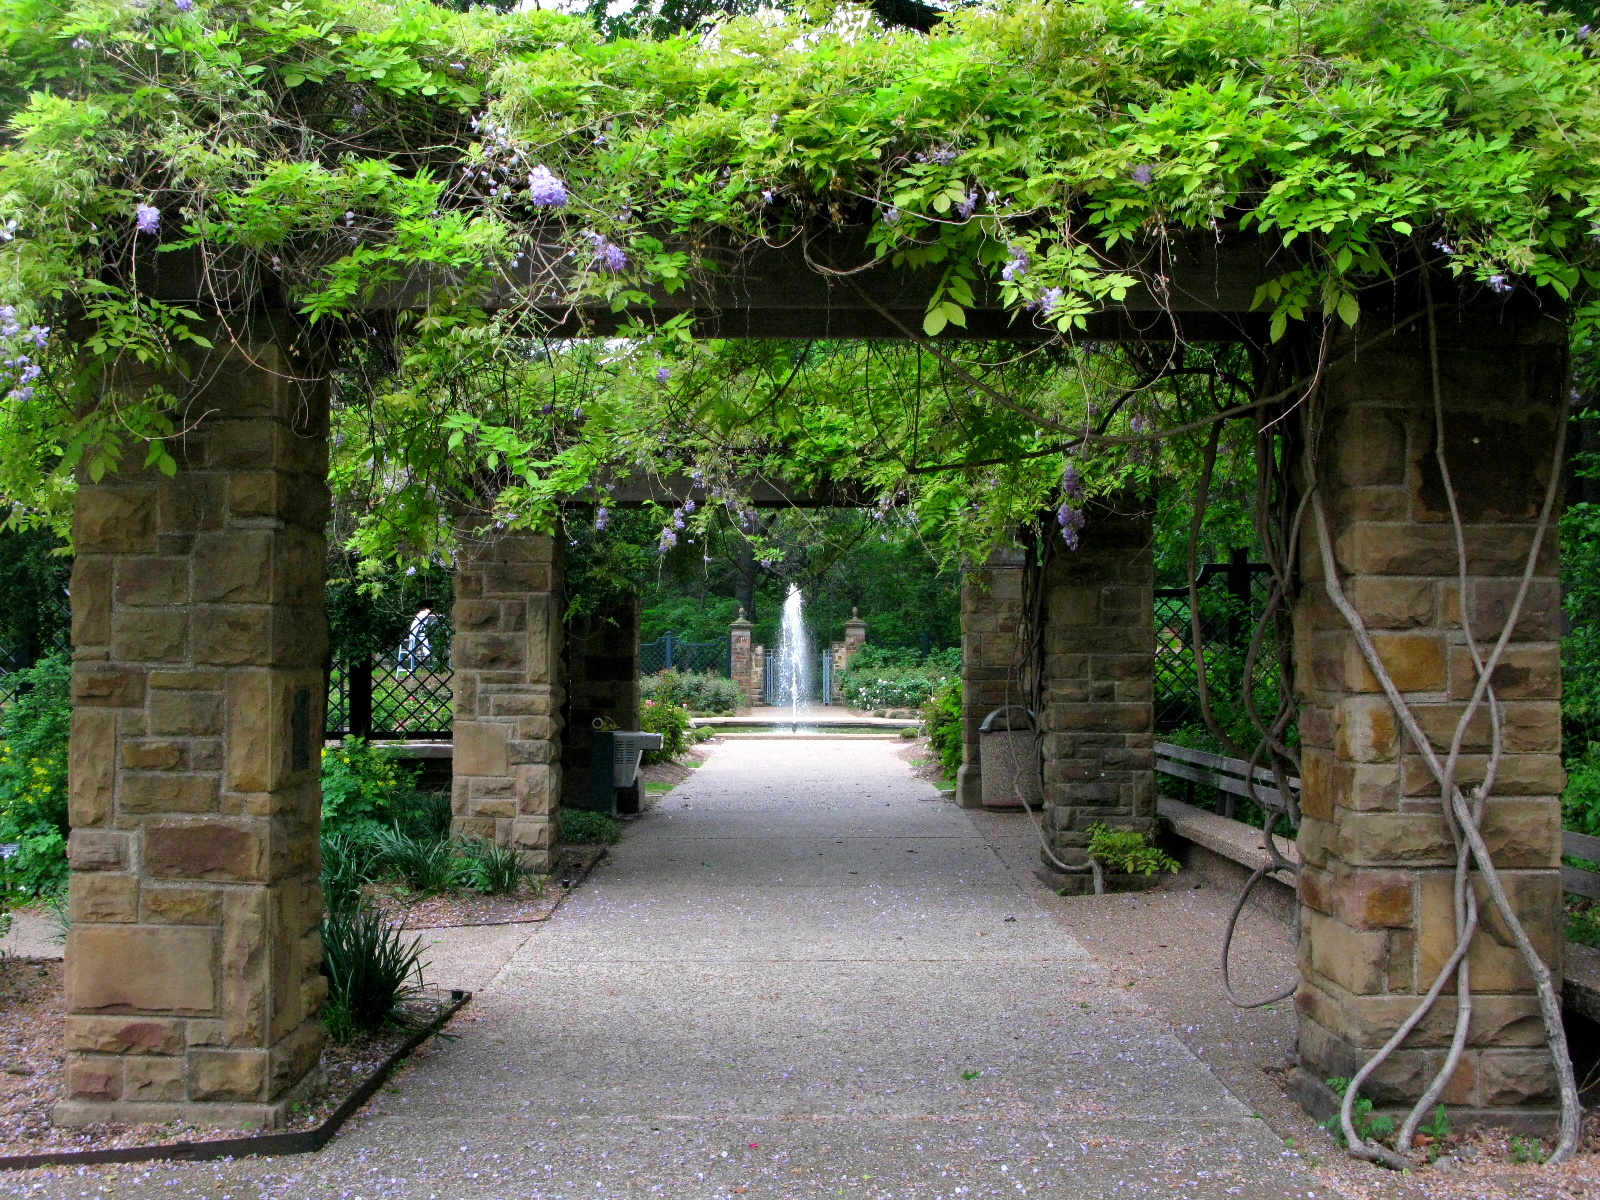 Wisteria covered walkways in the Rose Garden.